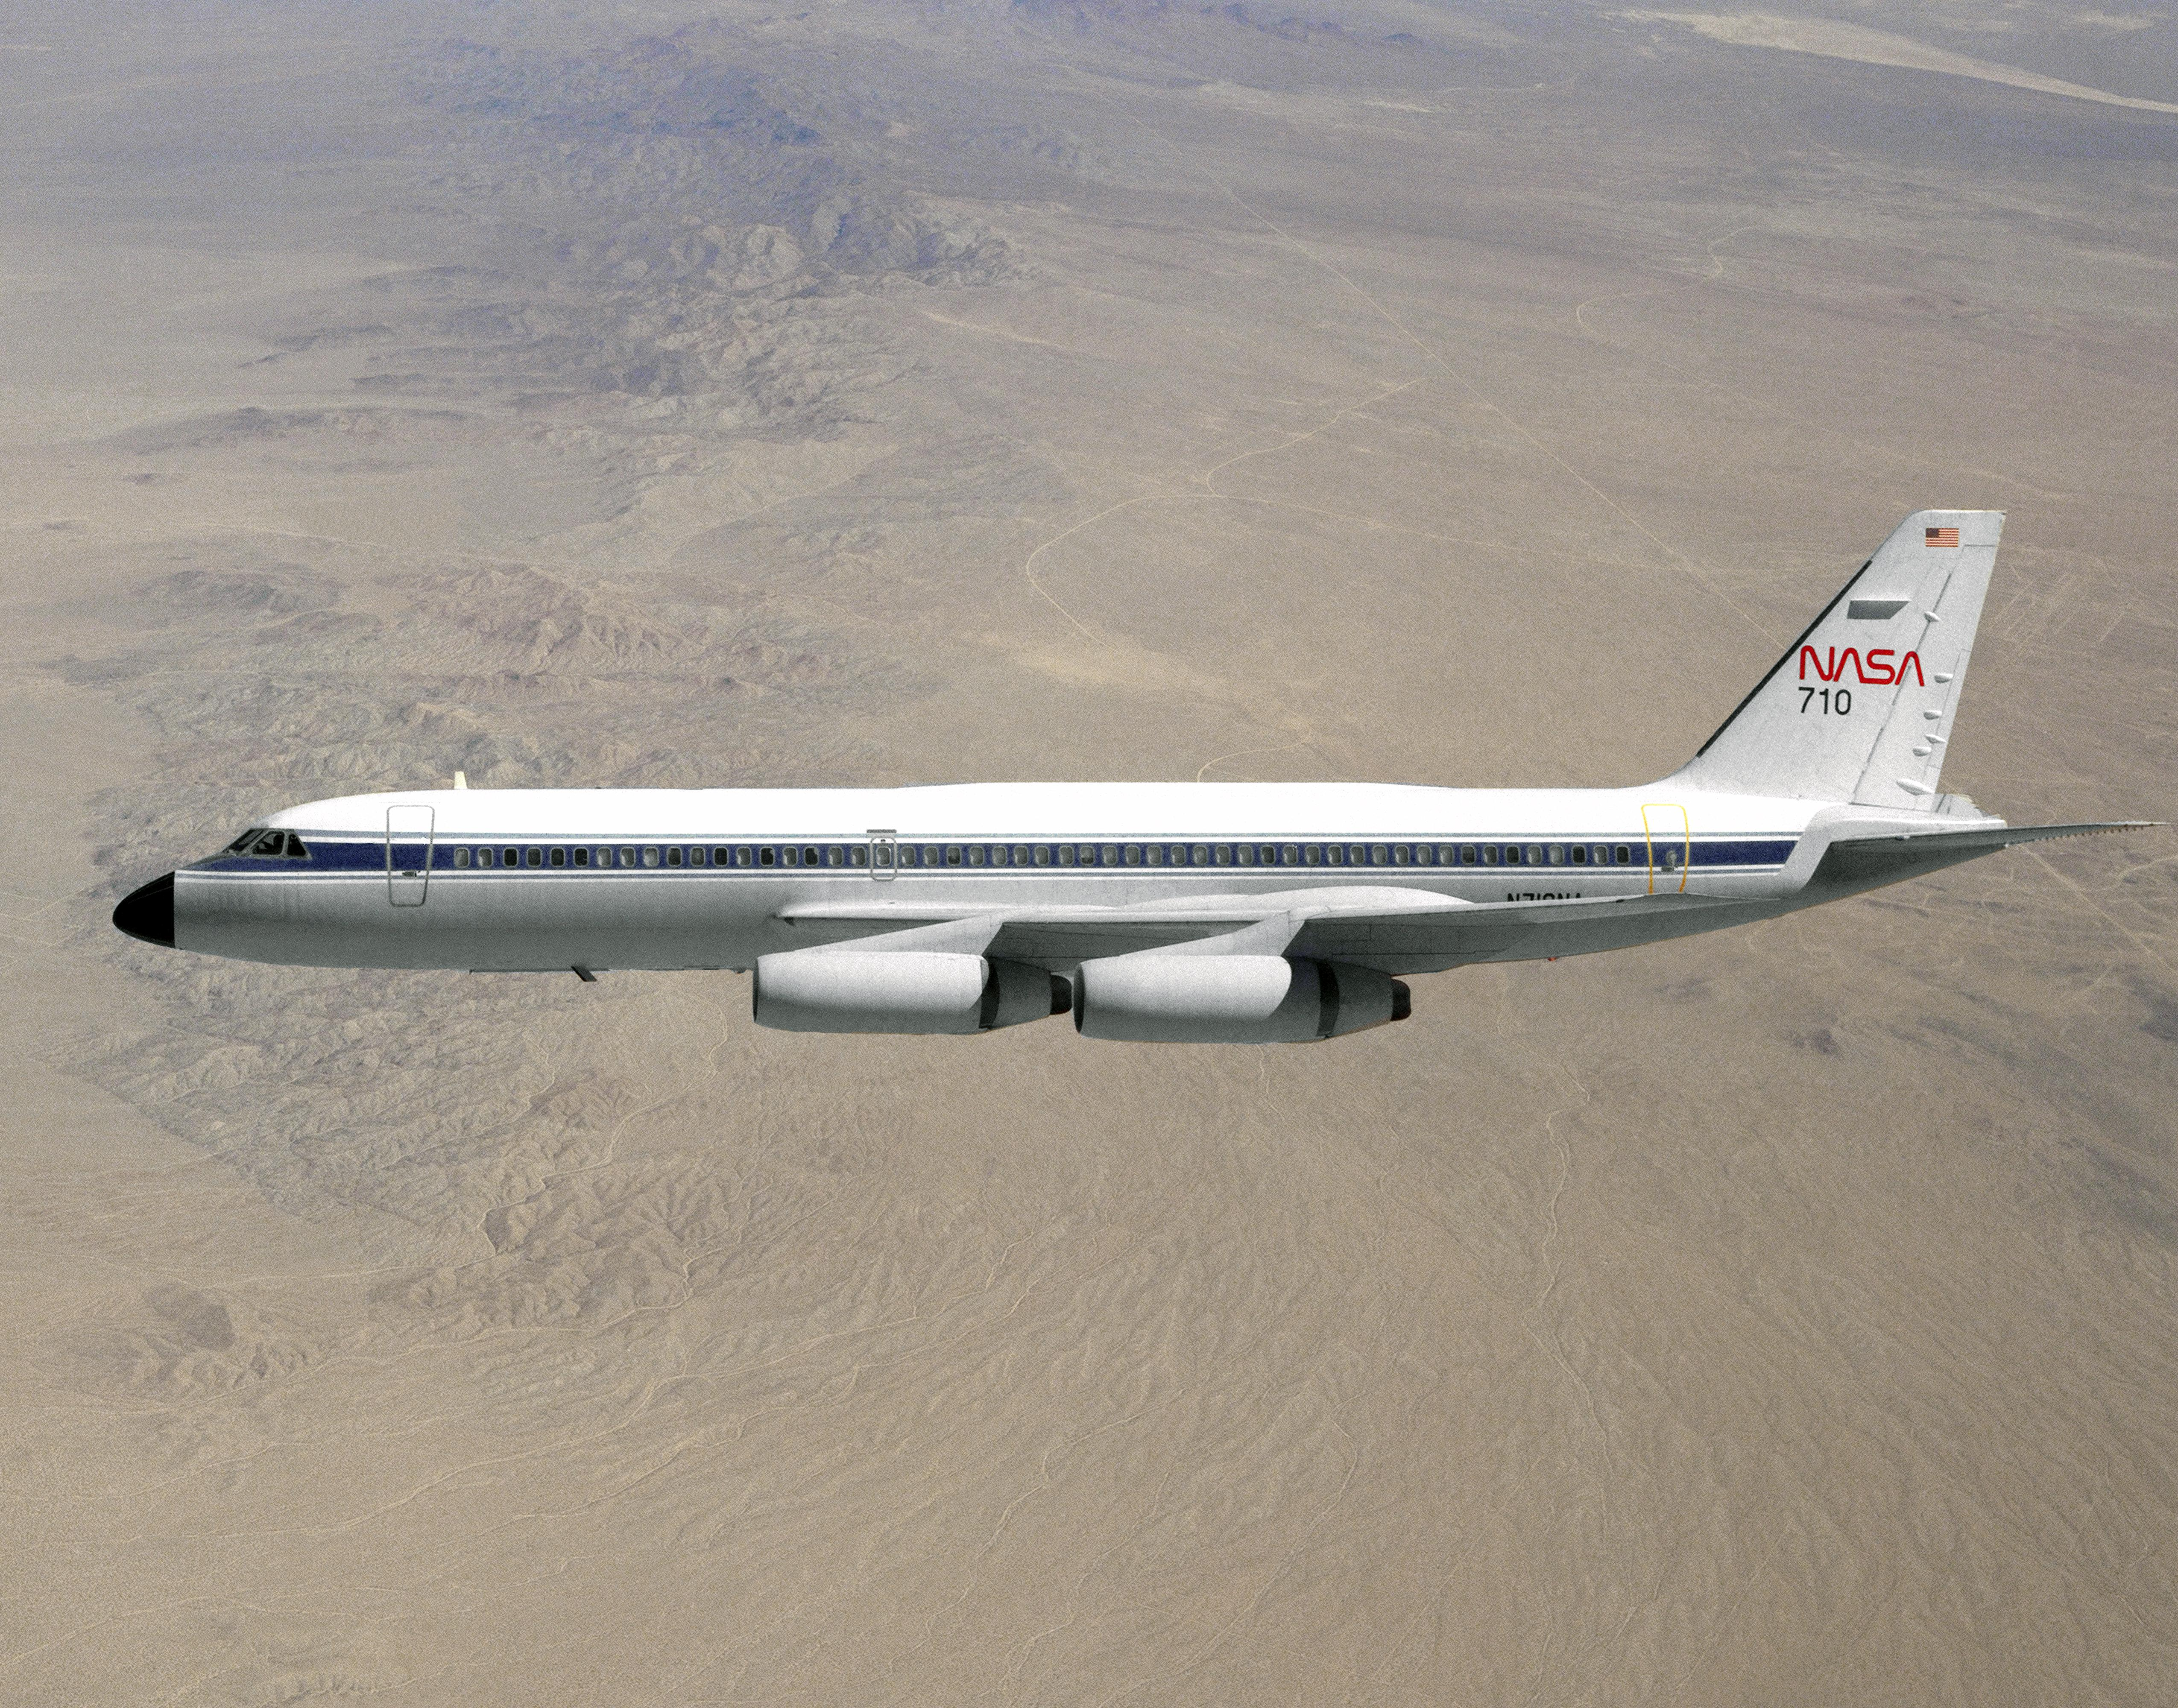 http://upload.wikimedia.org/wikipedia/commons/4/49/Convair_990_in_flight_EC89-0042-11.jpg